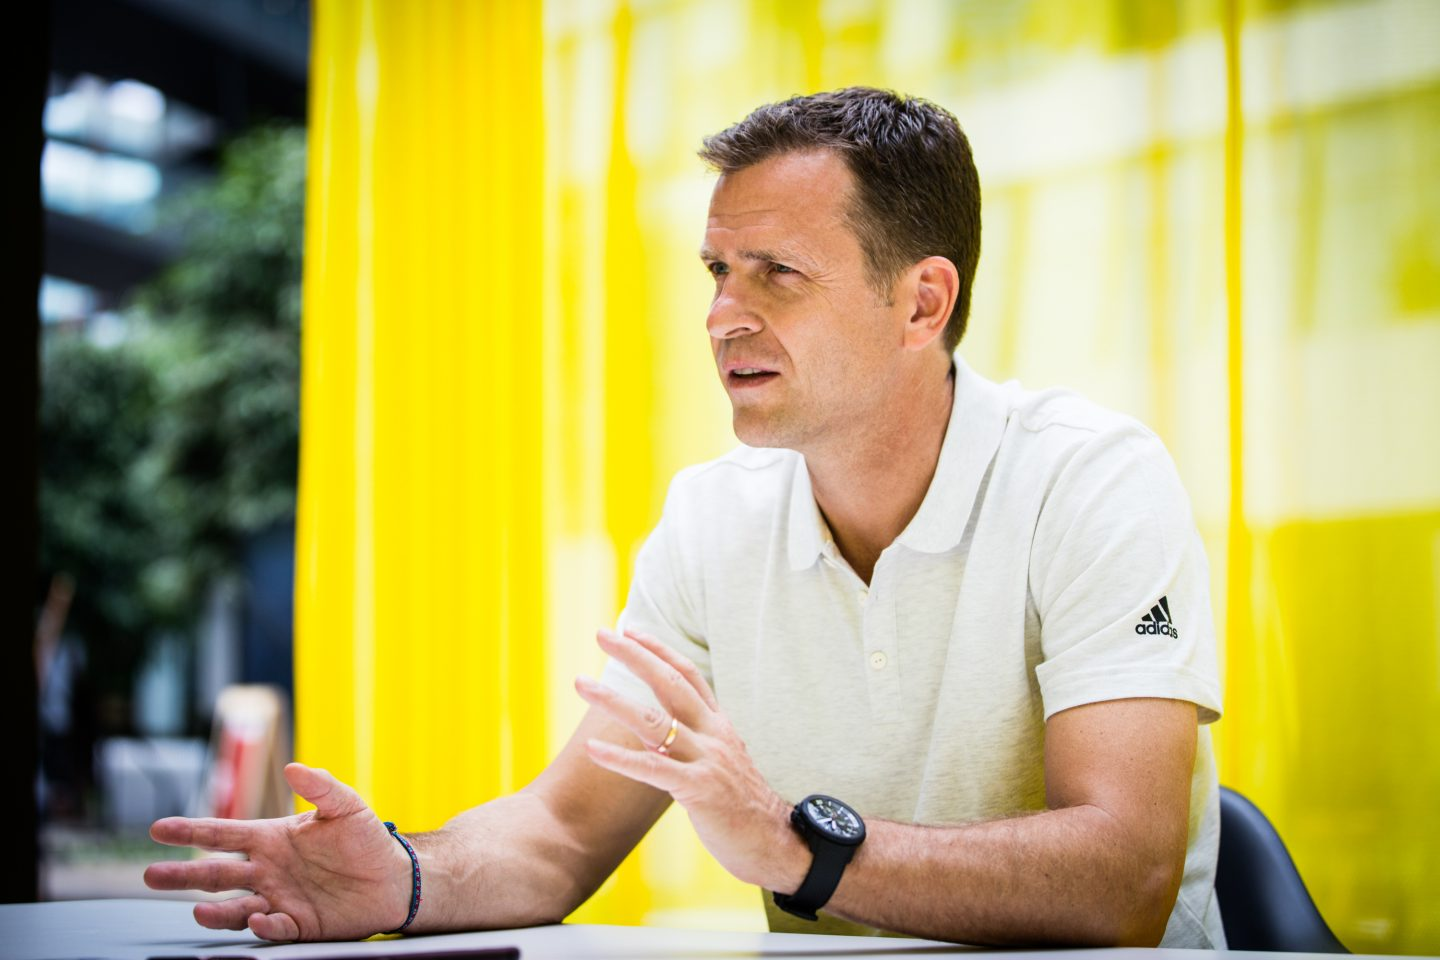 Oliver Bierhoff, Manager German national football team wearing white poloshirt talking during an interview in front of a yellow background, Oliver Bierhoff_DFB_interview_adidas_GamePlan A